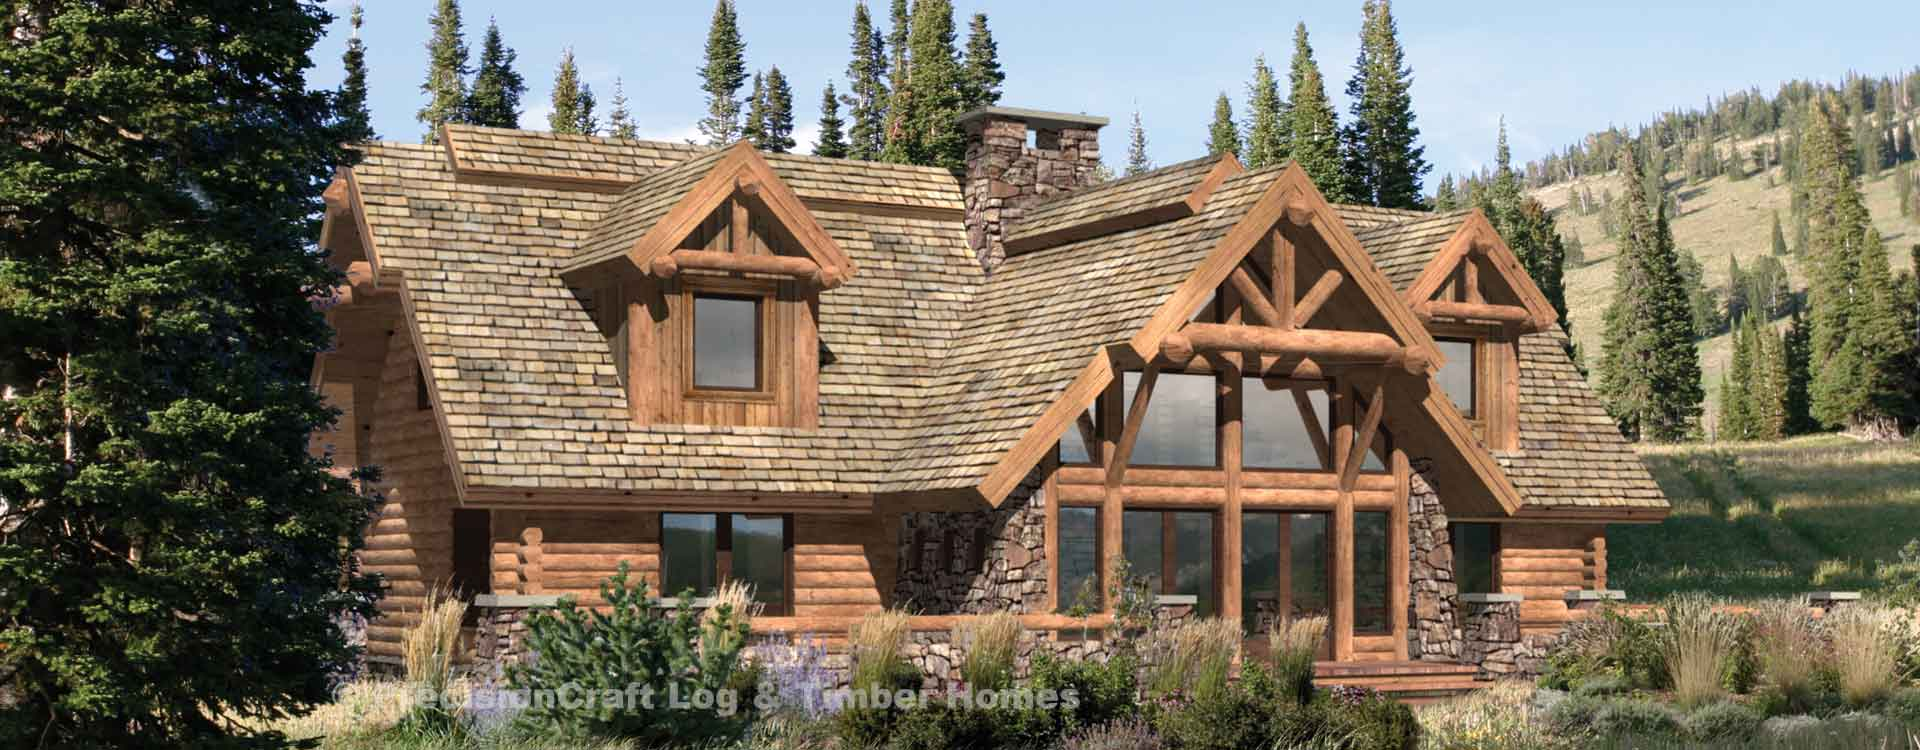 Pinegrove Log Home Cabin